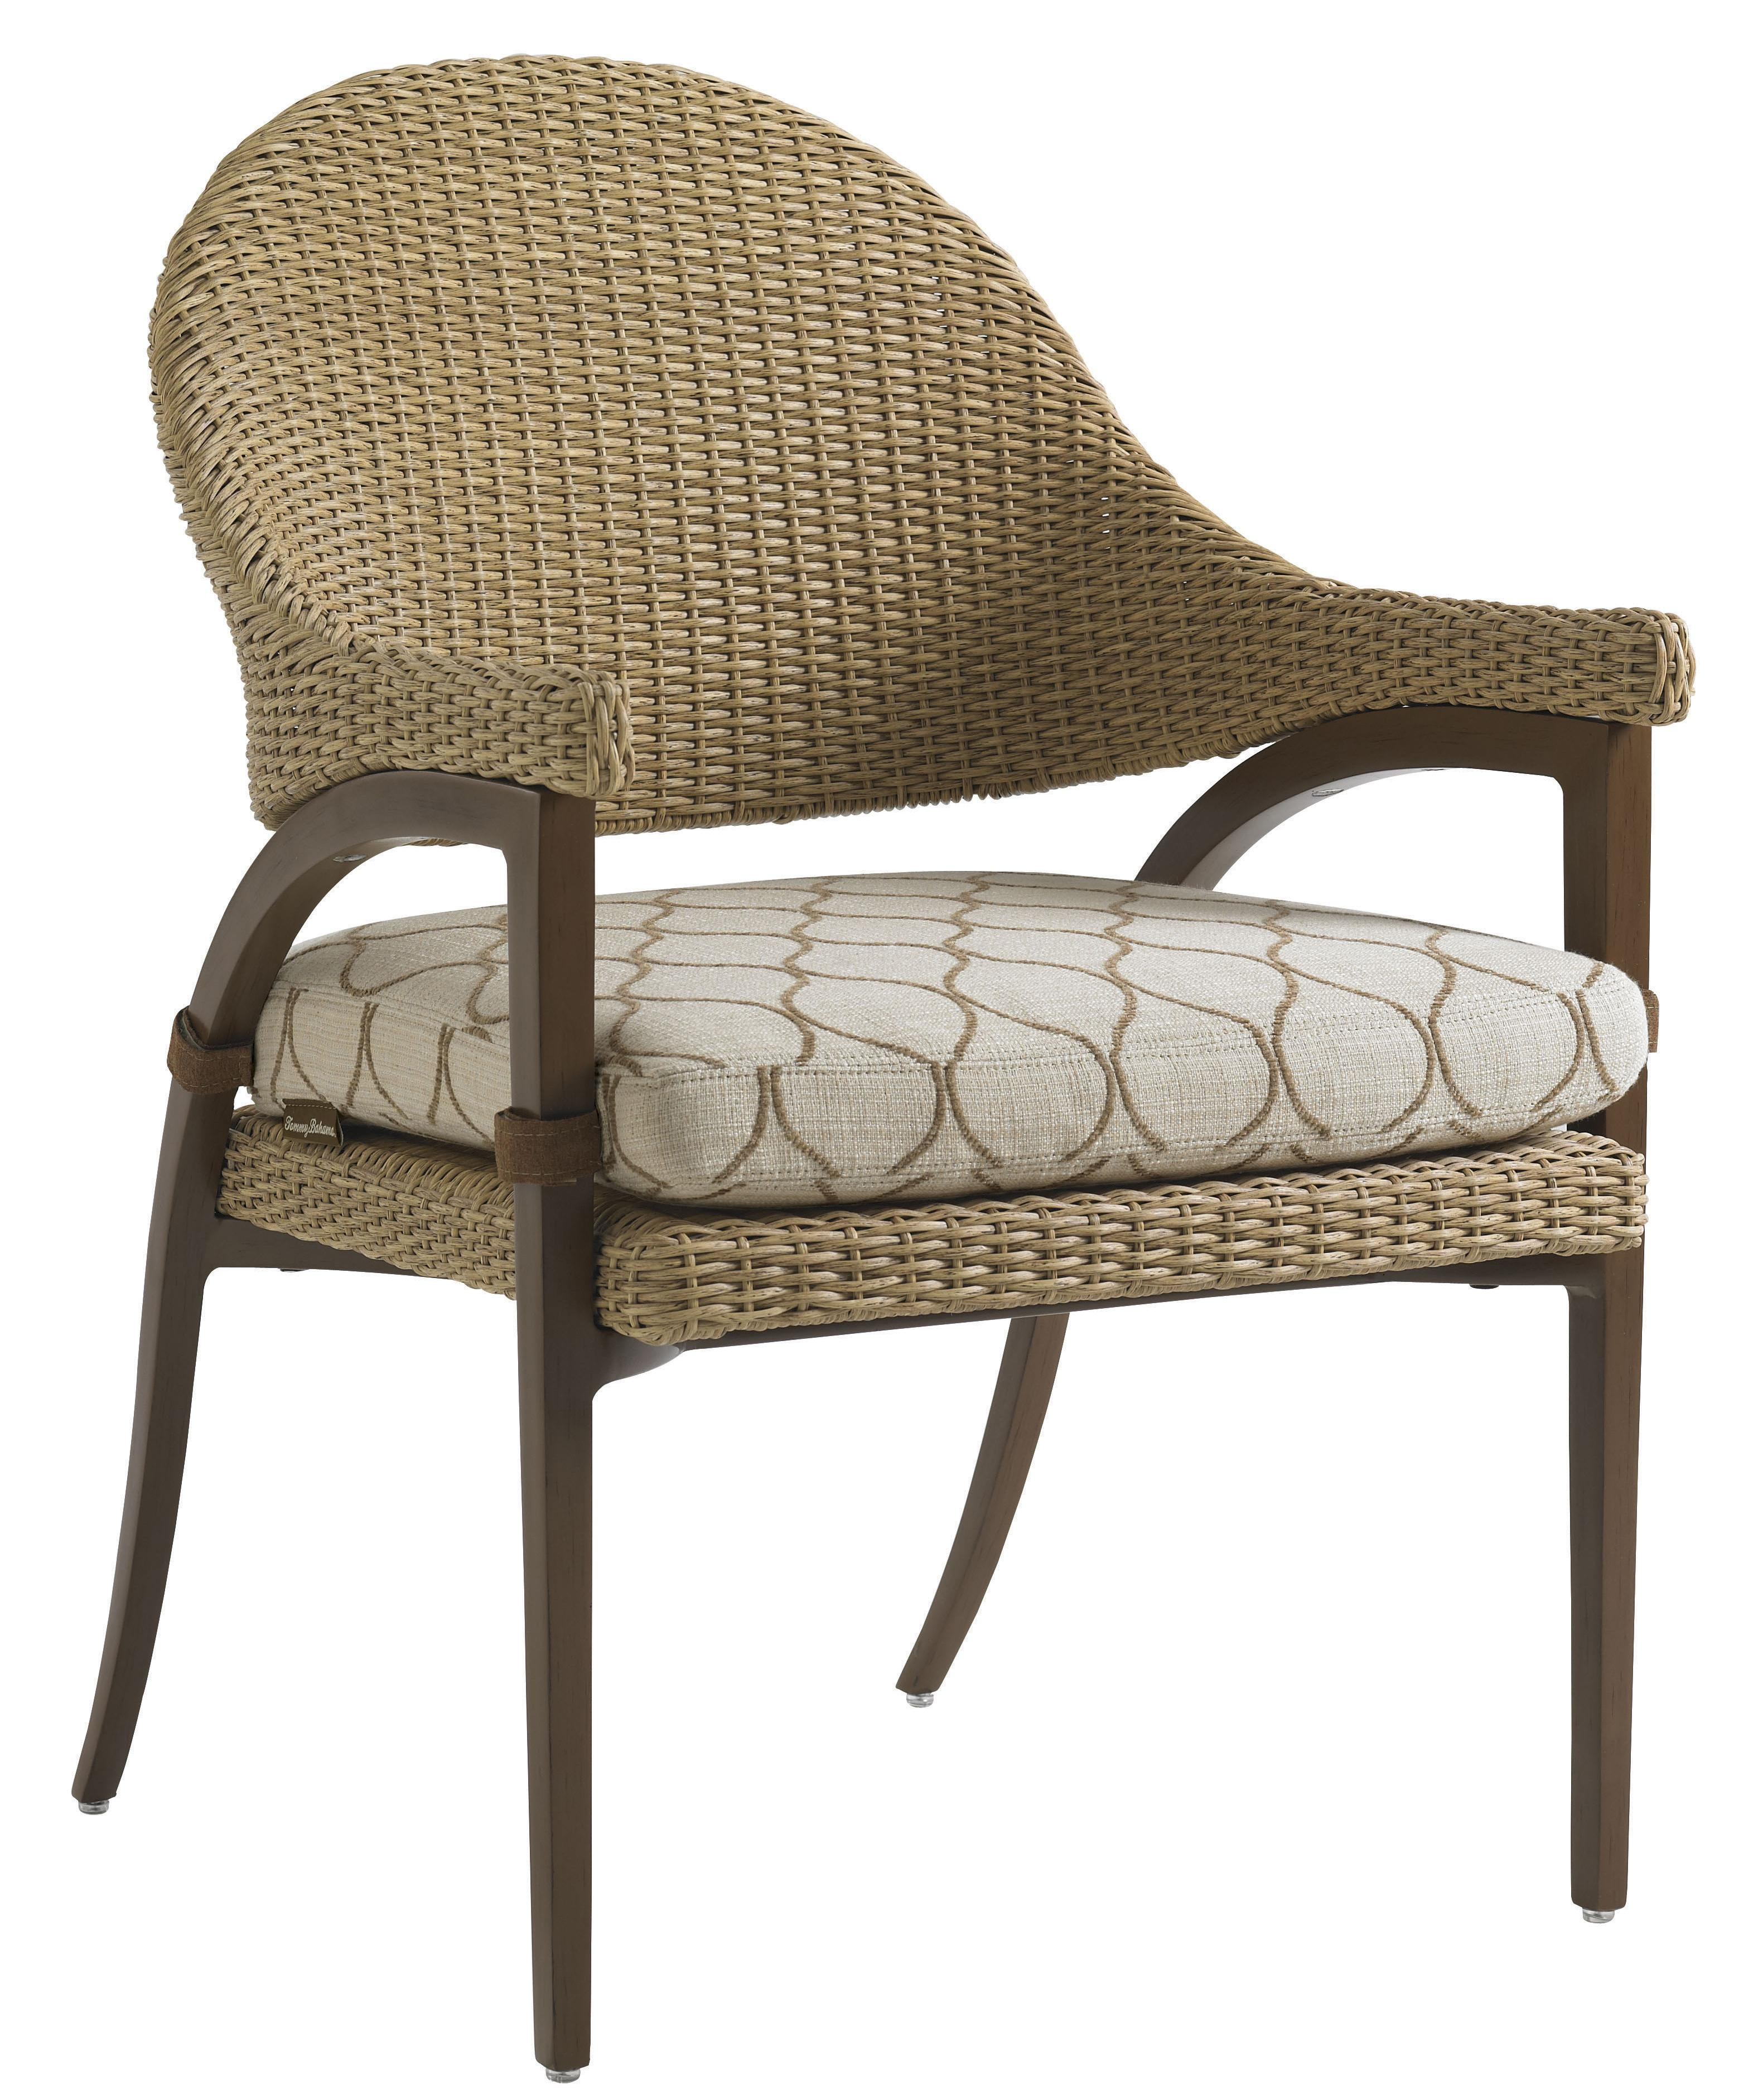 Tommy Bahama Outdoor Living Aviano Outdoor Dining Arm Chair - Item Number: 3220-13+CS3220-13